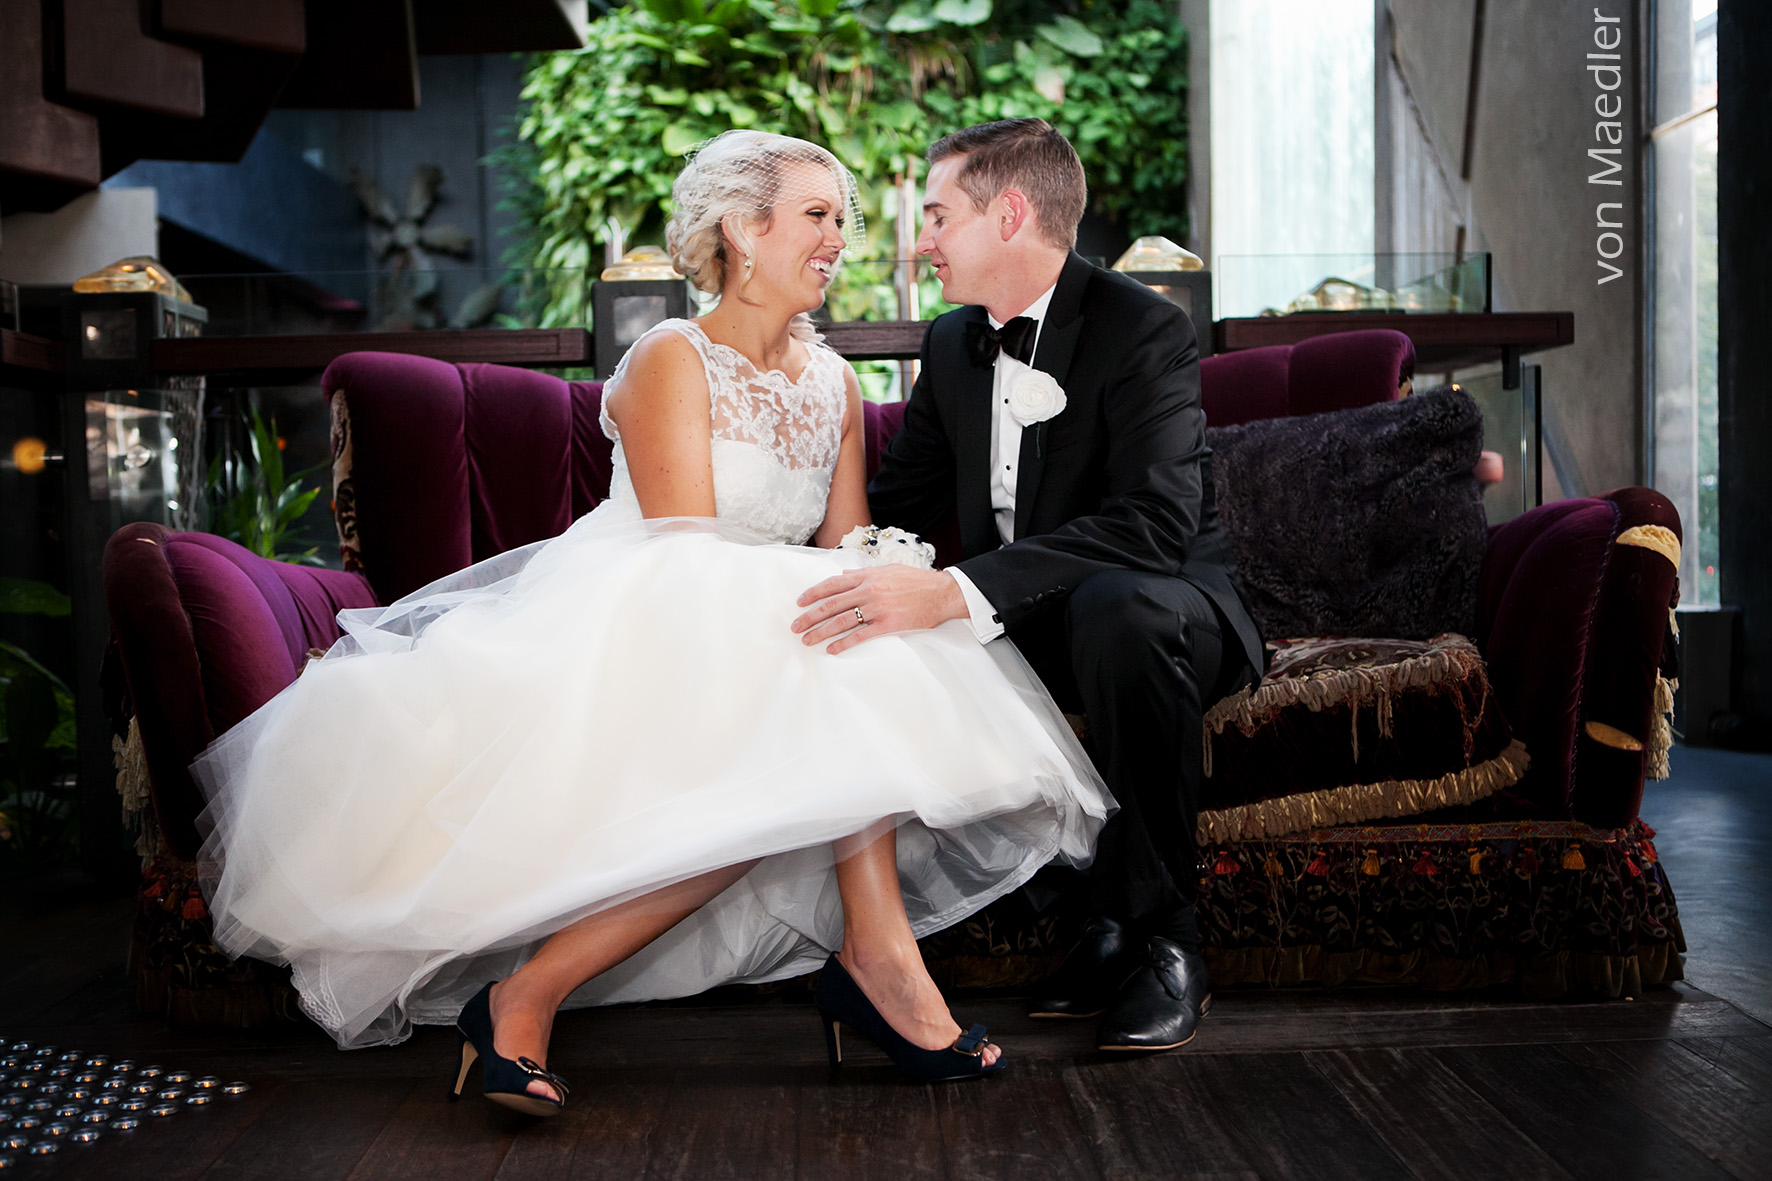 von Maedler - Wedding Photography - vonm.com.au - 097